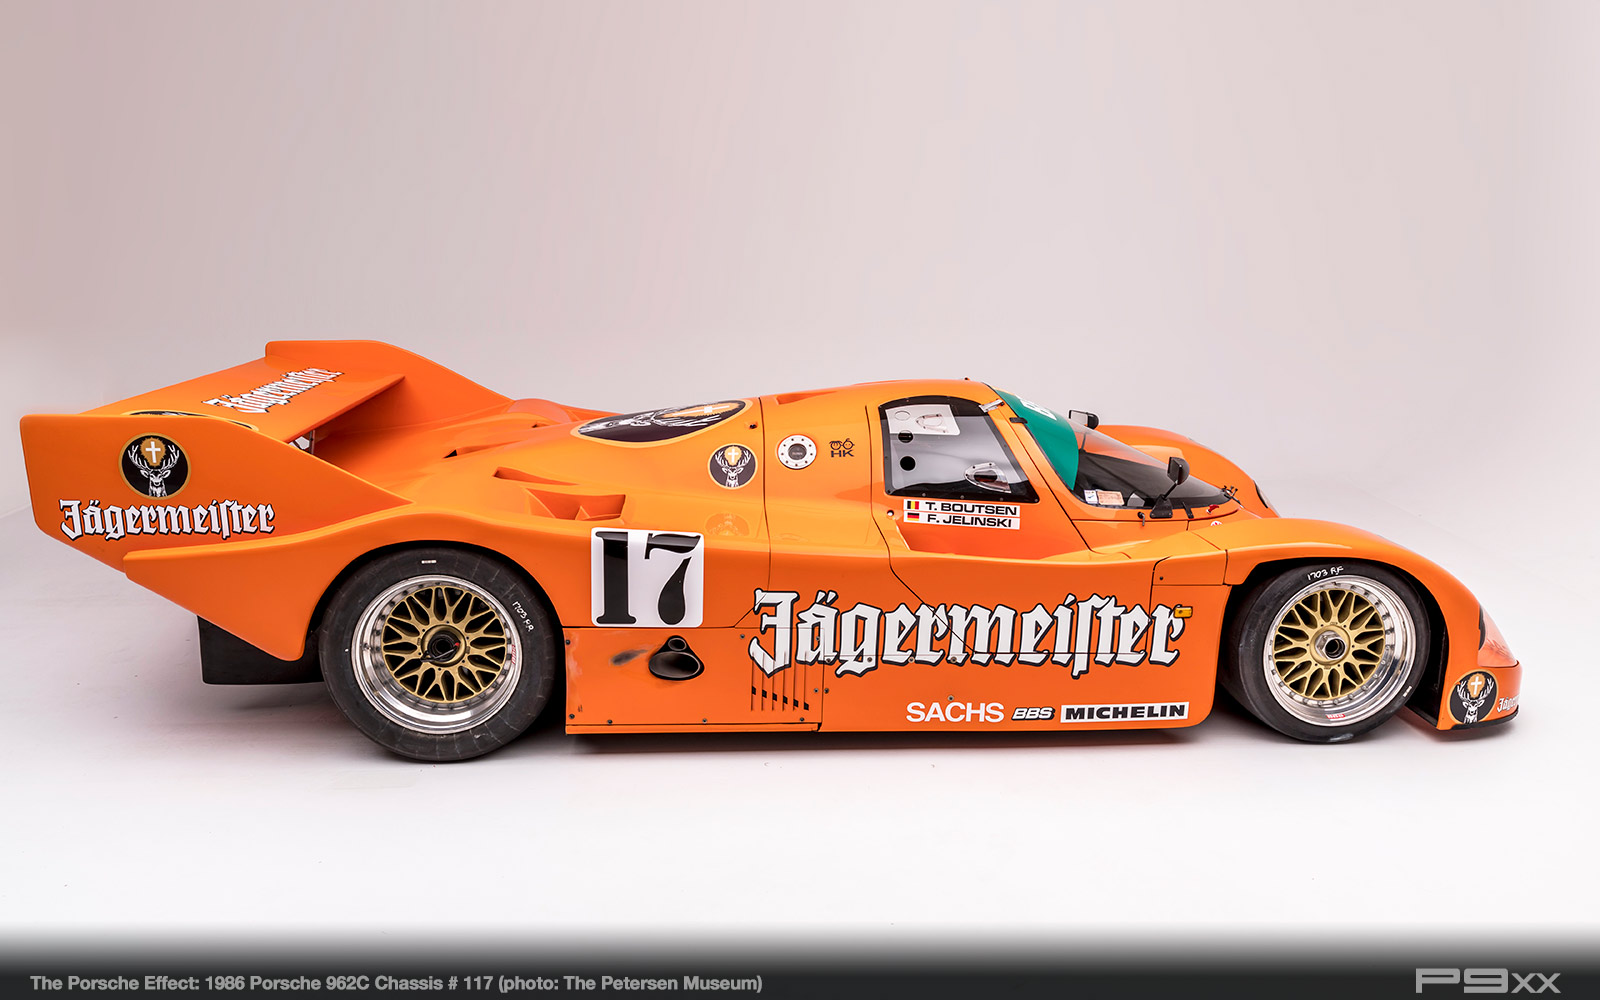 1986-Jagermeister-962C-Chassis-117-Petersen-Automotive-Museum-The-Porsche-Effect-438